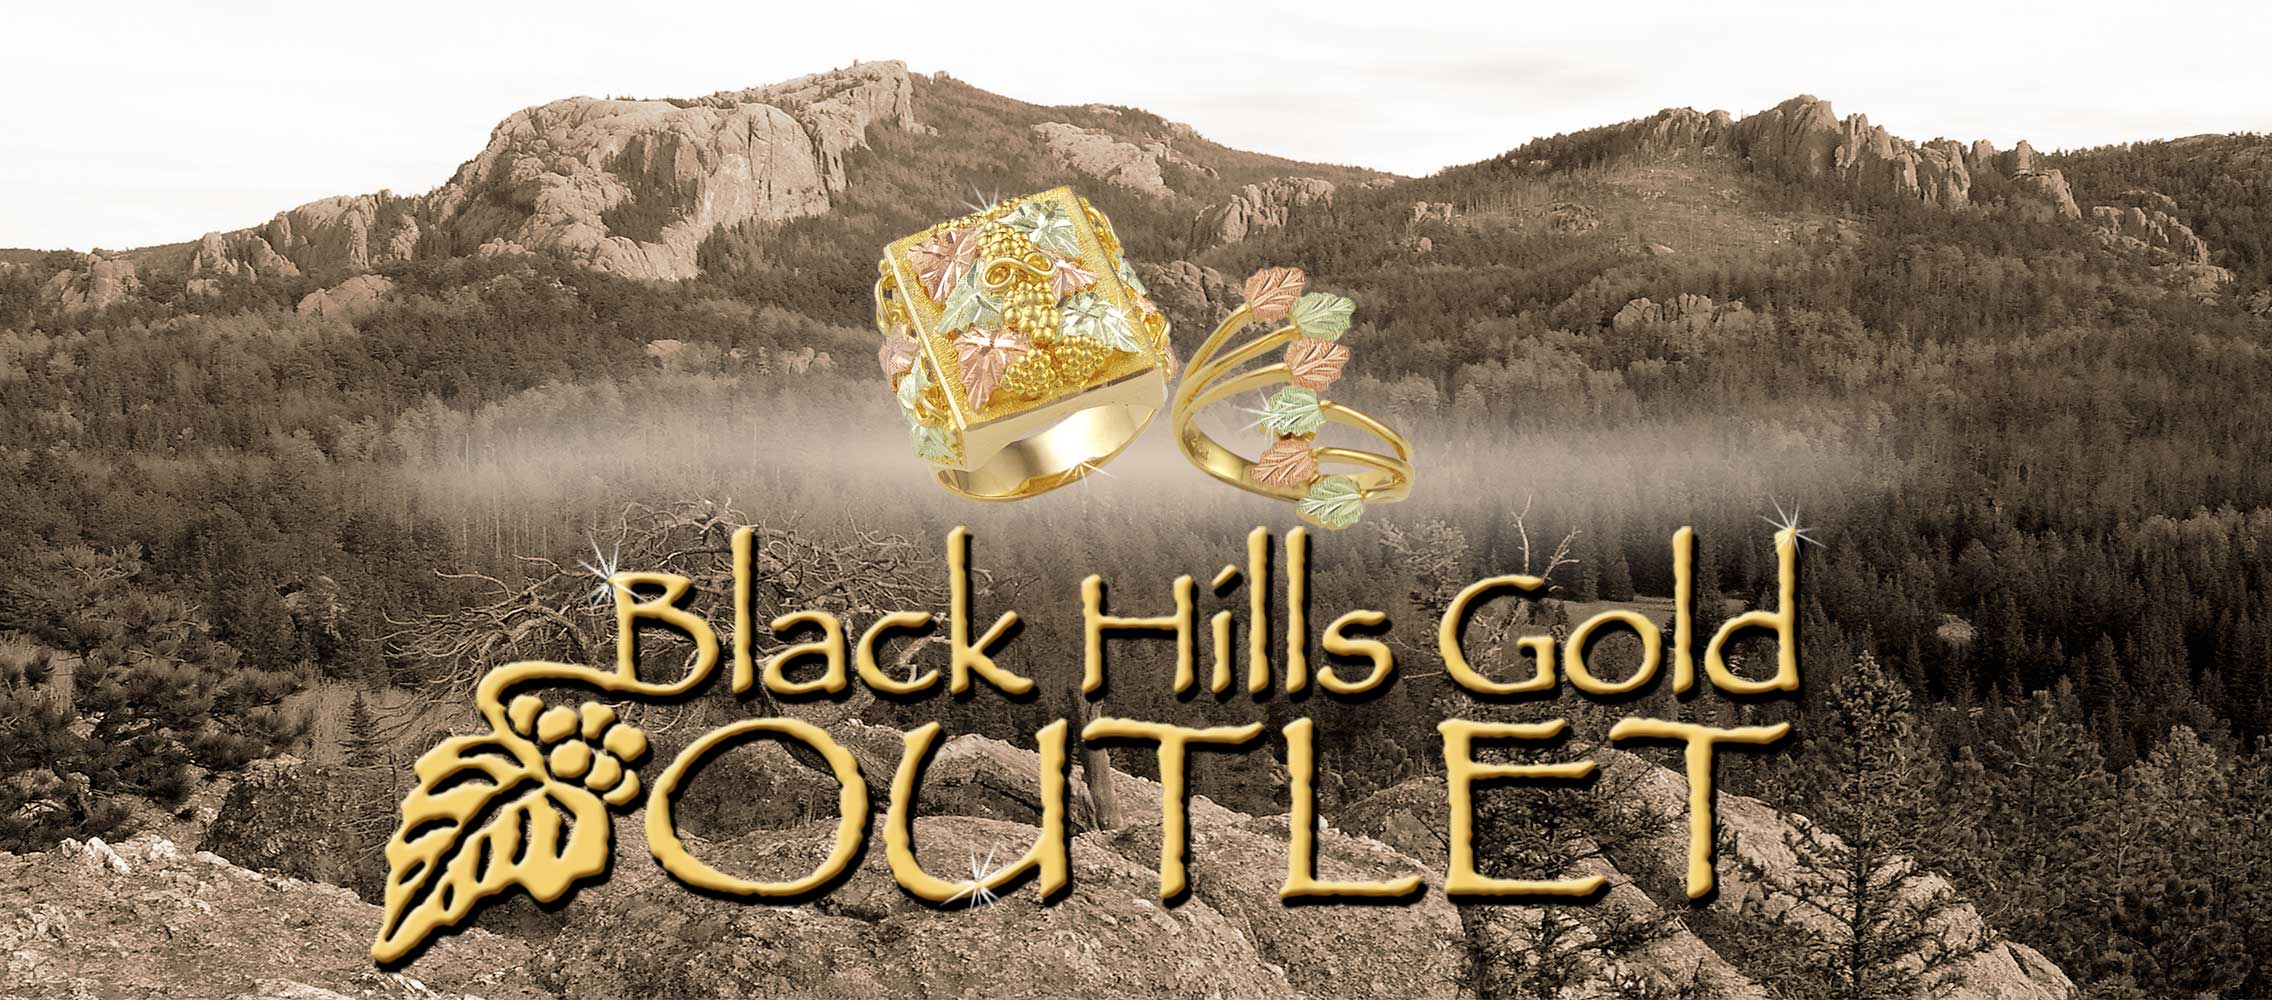 Black Hills Gold Outlet